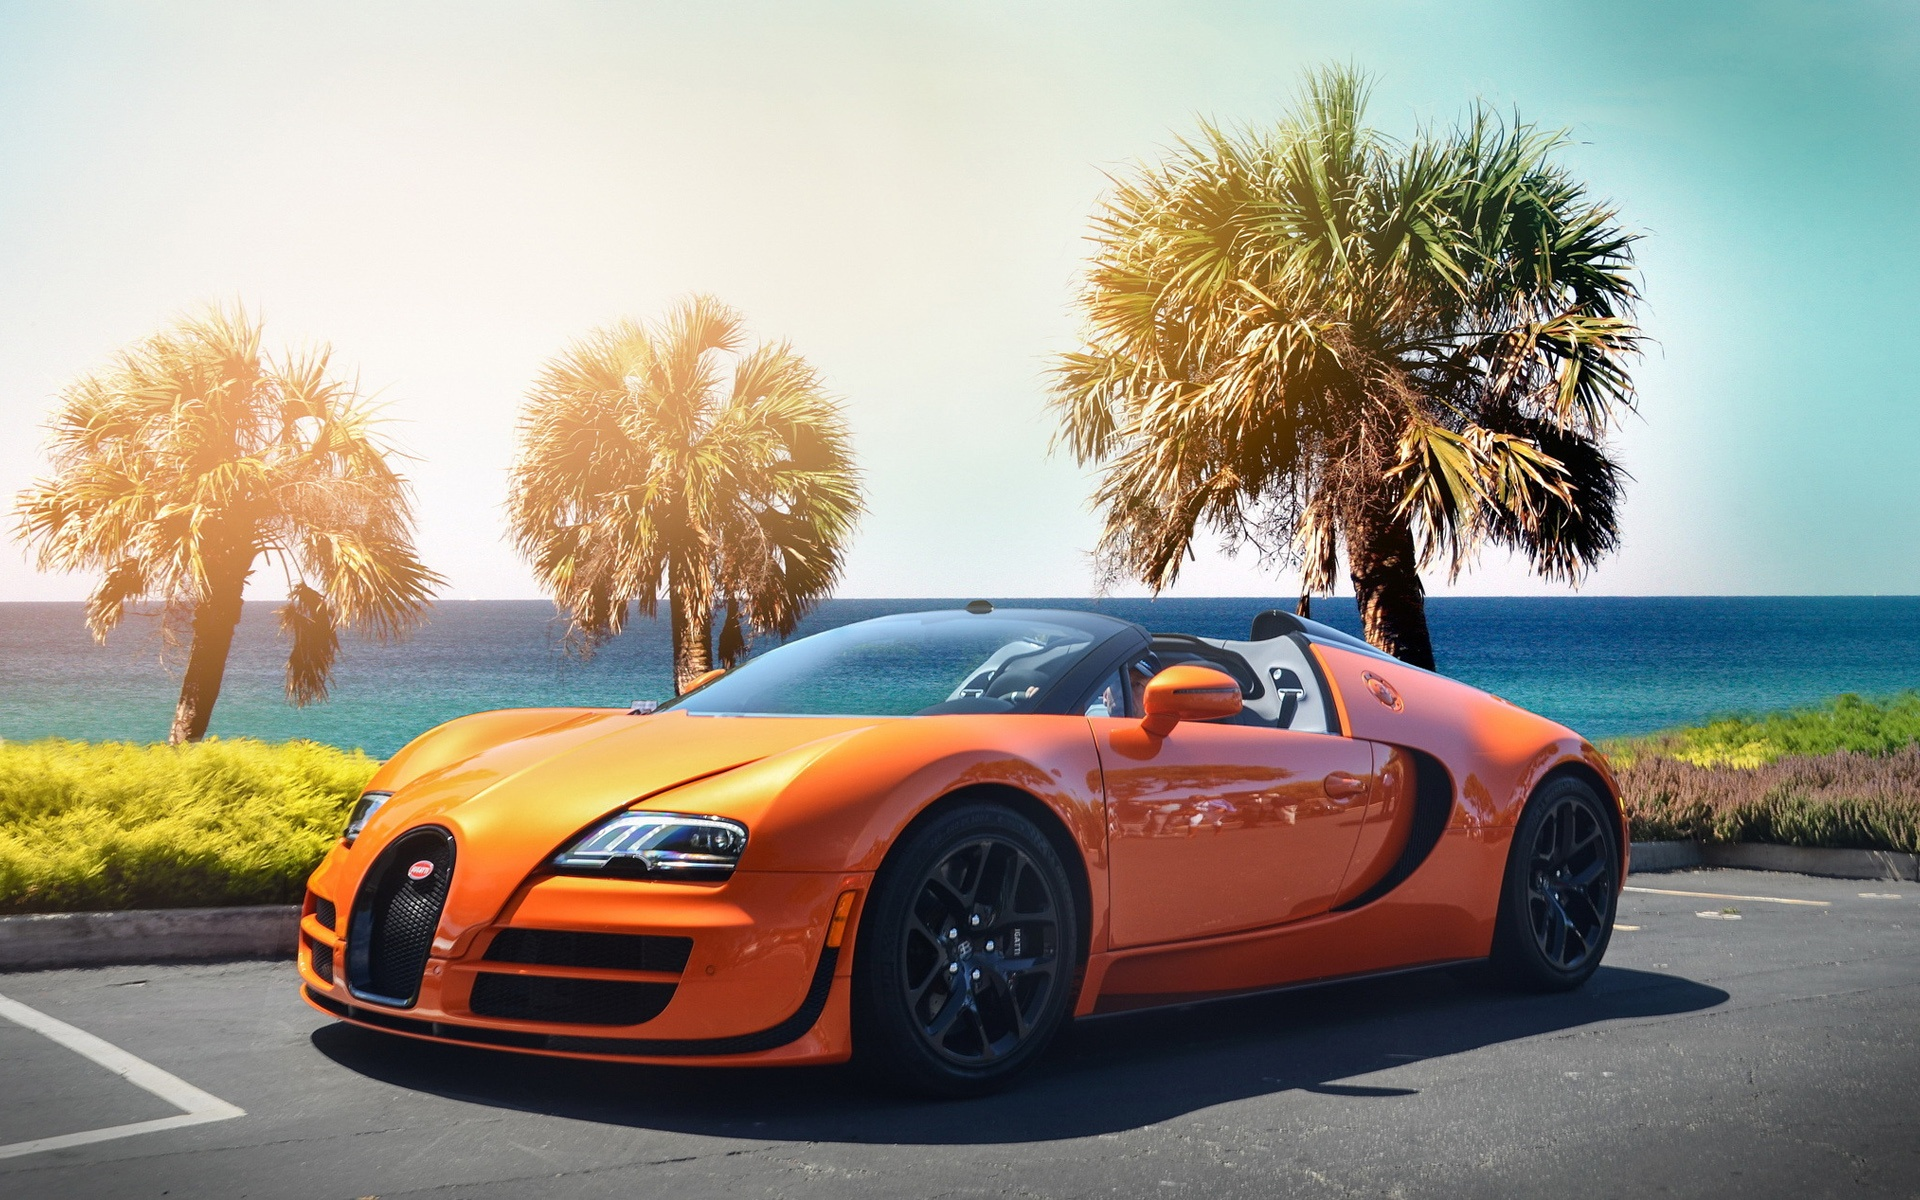 bugatti veyron hypercar orange color wallpapers wide screen wallpaper 1080p 2k 4k. Black Bedroom Furniture Sets. Home Design Ideas